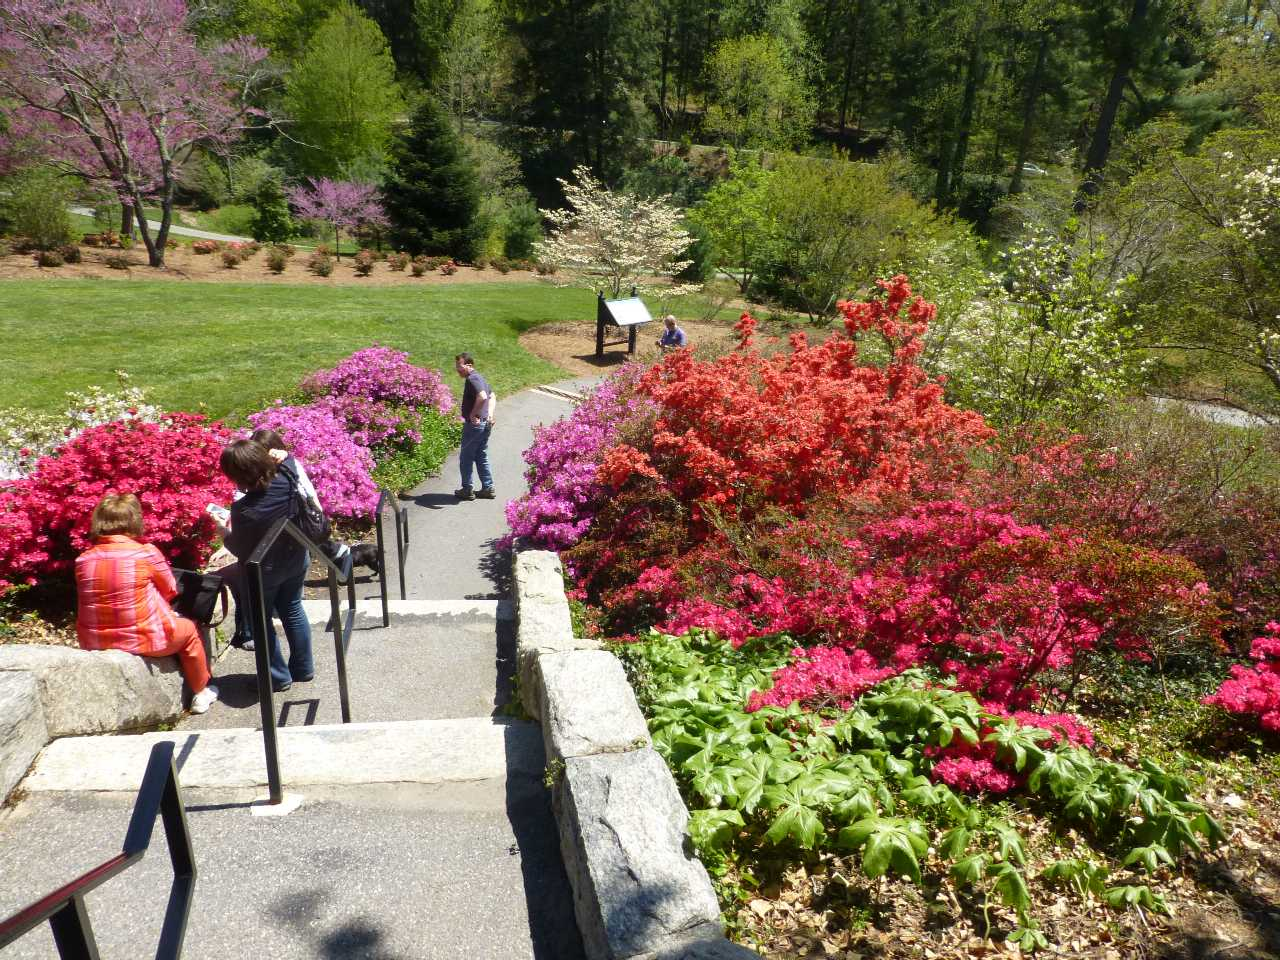 Several sets of stairs leading into a large garden with flowering shrubs